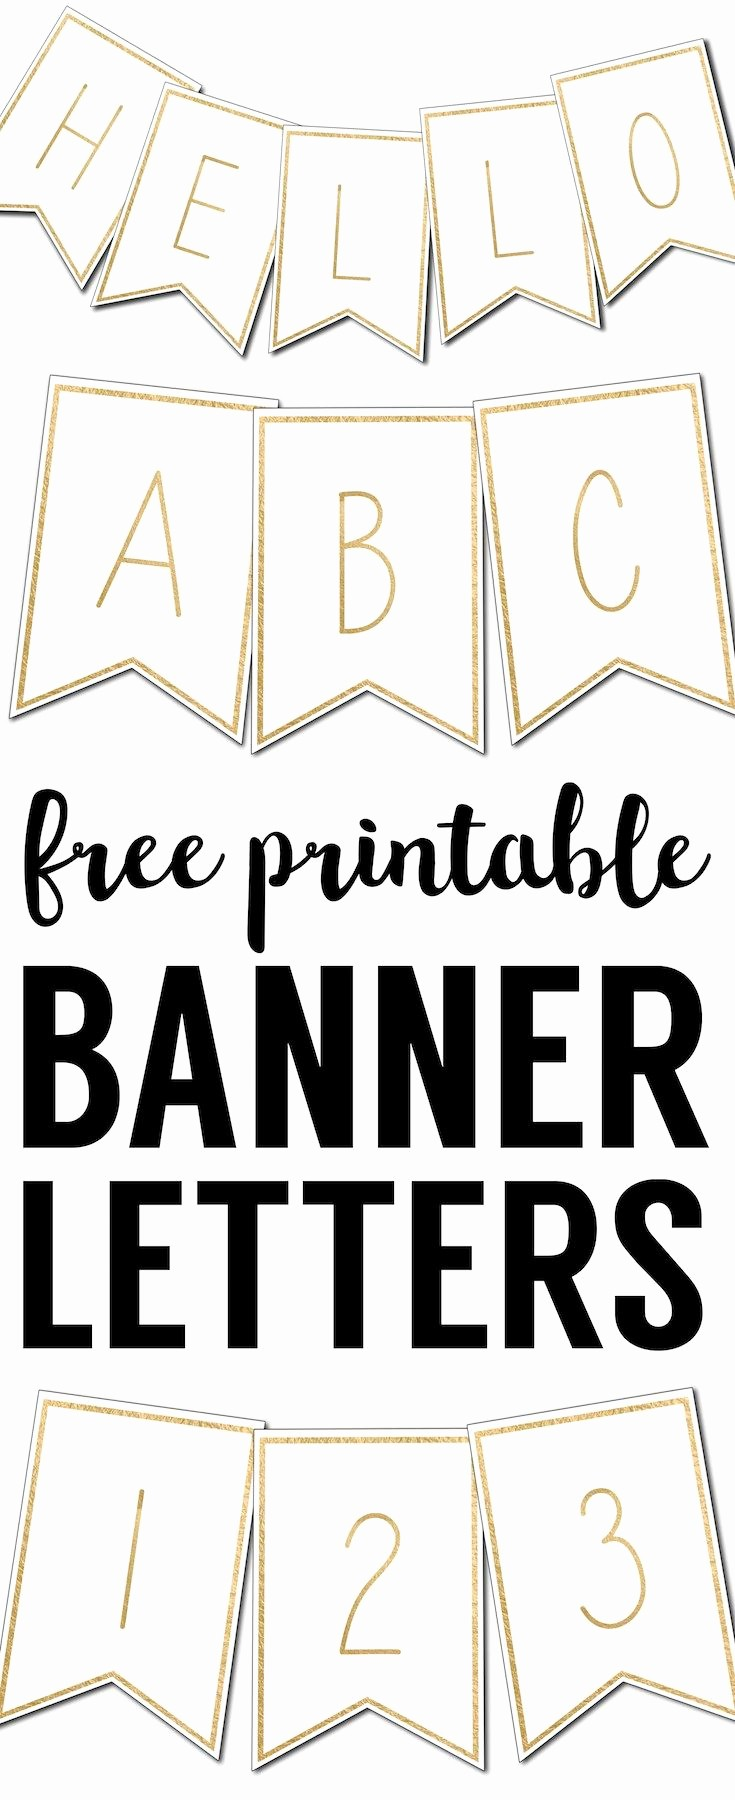 How to Make Banner Letters Elegant Free Printable Banner Letters Templates